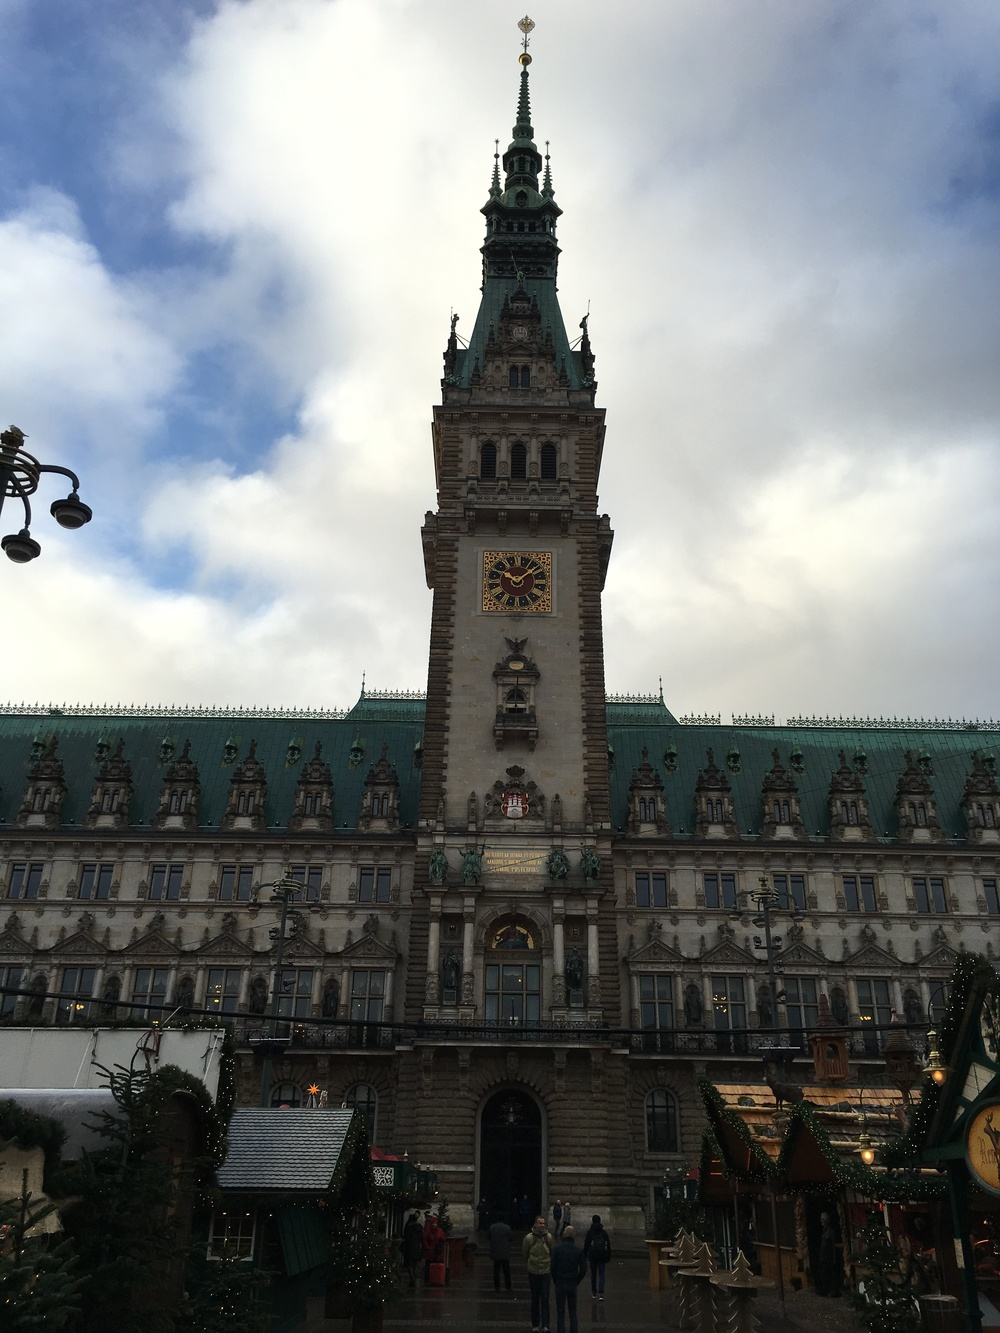 The impressive town hall building (Rathaus in German), located in the city center, was built in 1897. Photo: Bruny Nieves